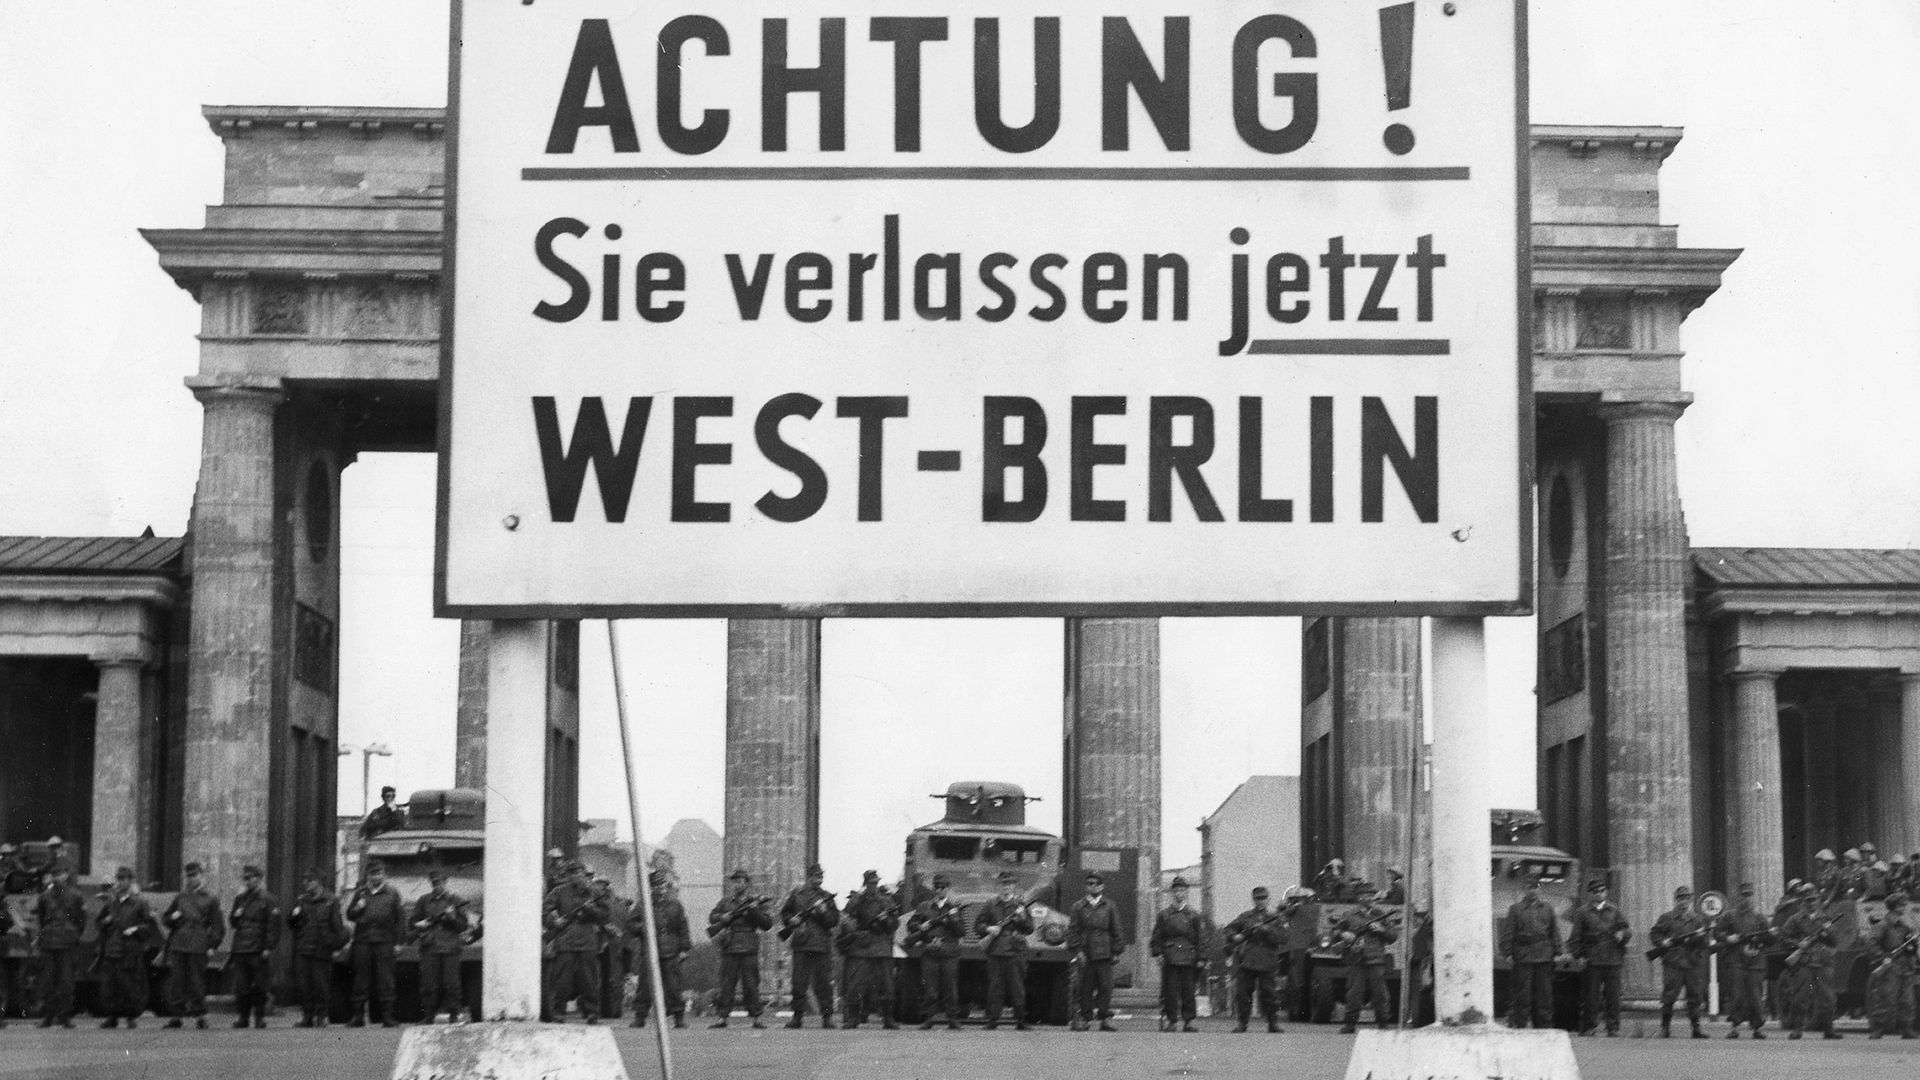 Guards at stand at the Brandenburg Gate, as the Berlin Wall goes up behind them, in August 1961 - Credit: ullstein bild via Getty Images